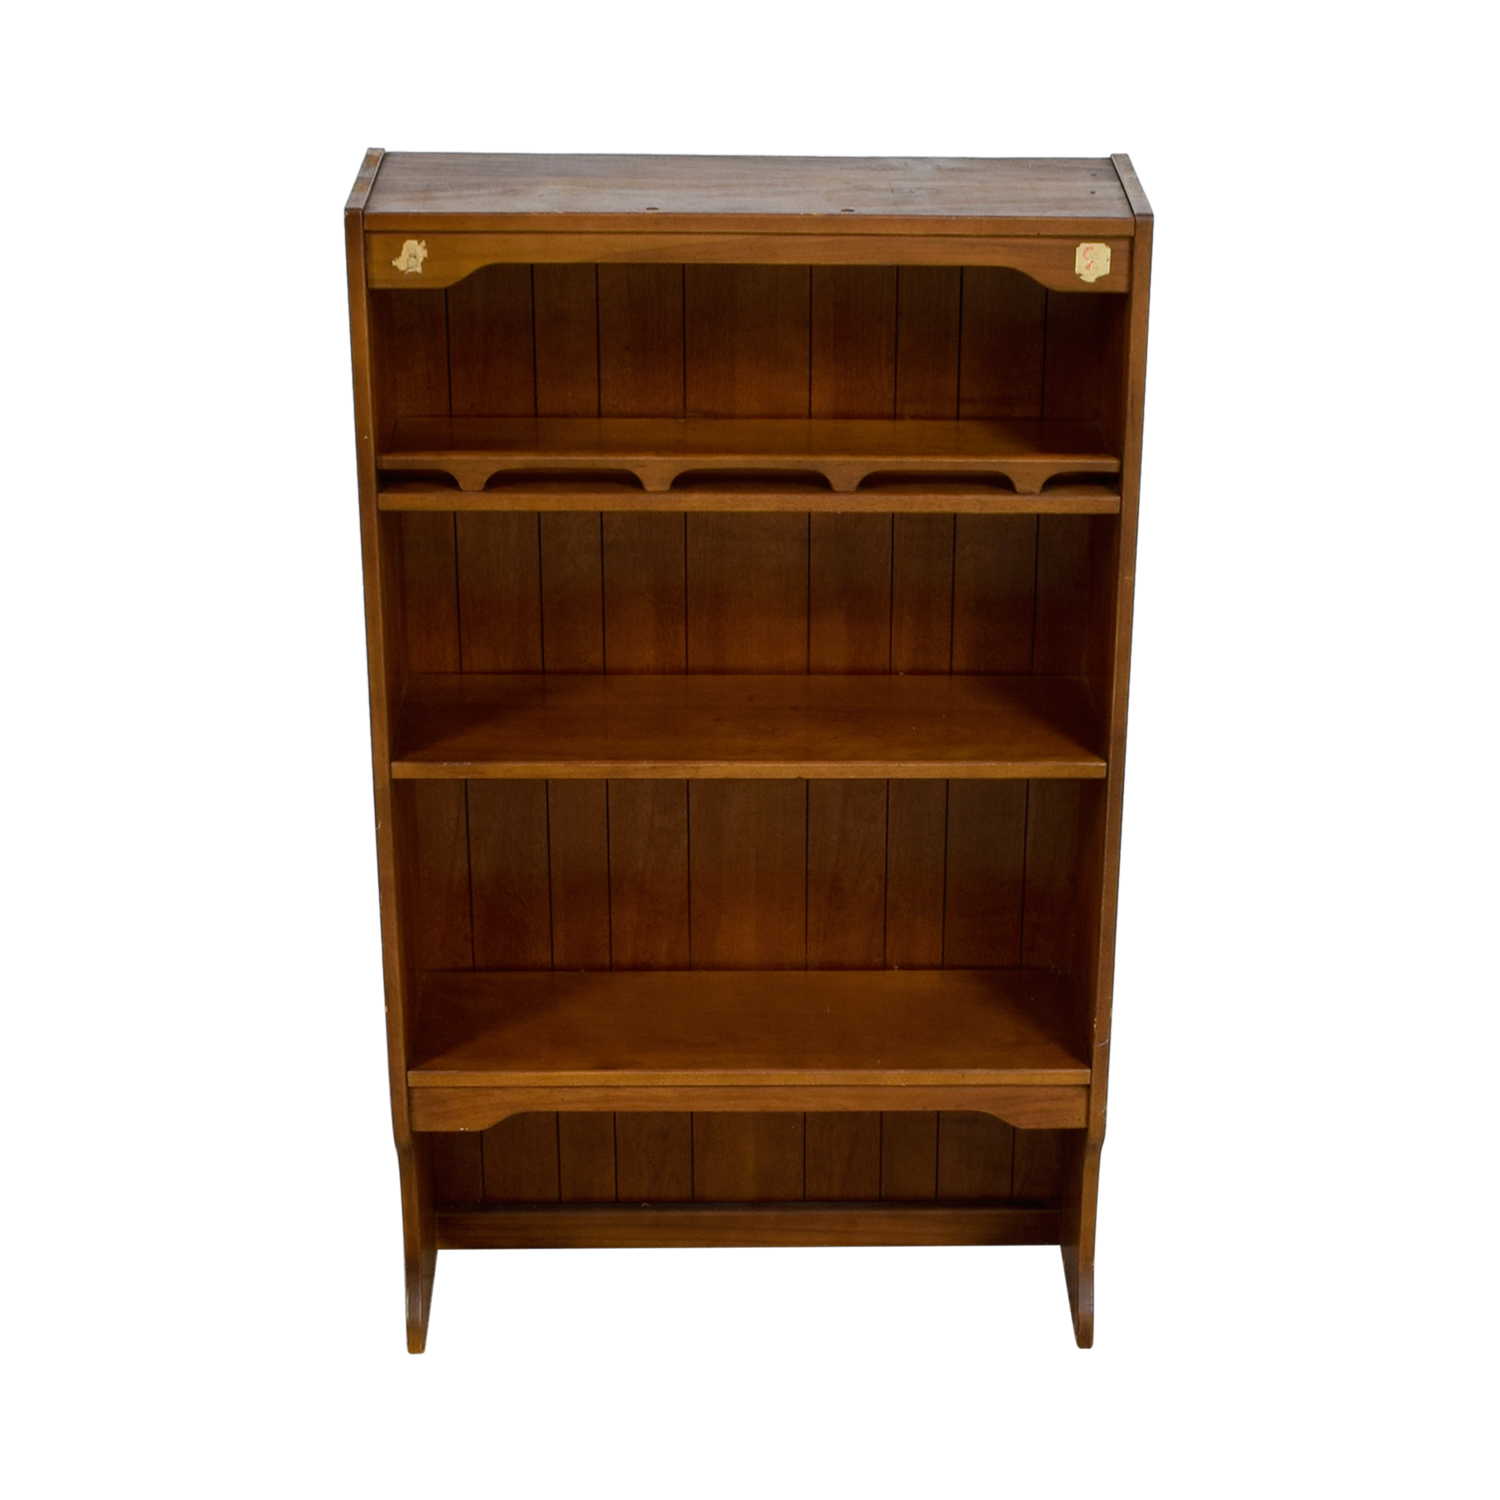 Three Shelf Wood Bookcase / Bookcases & Shelving